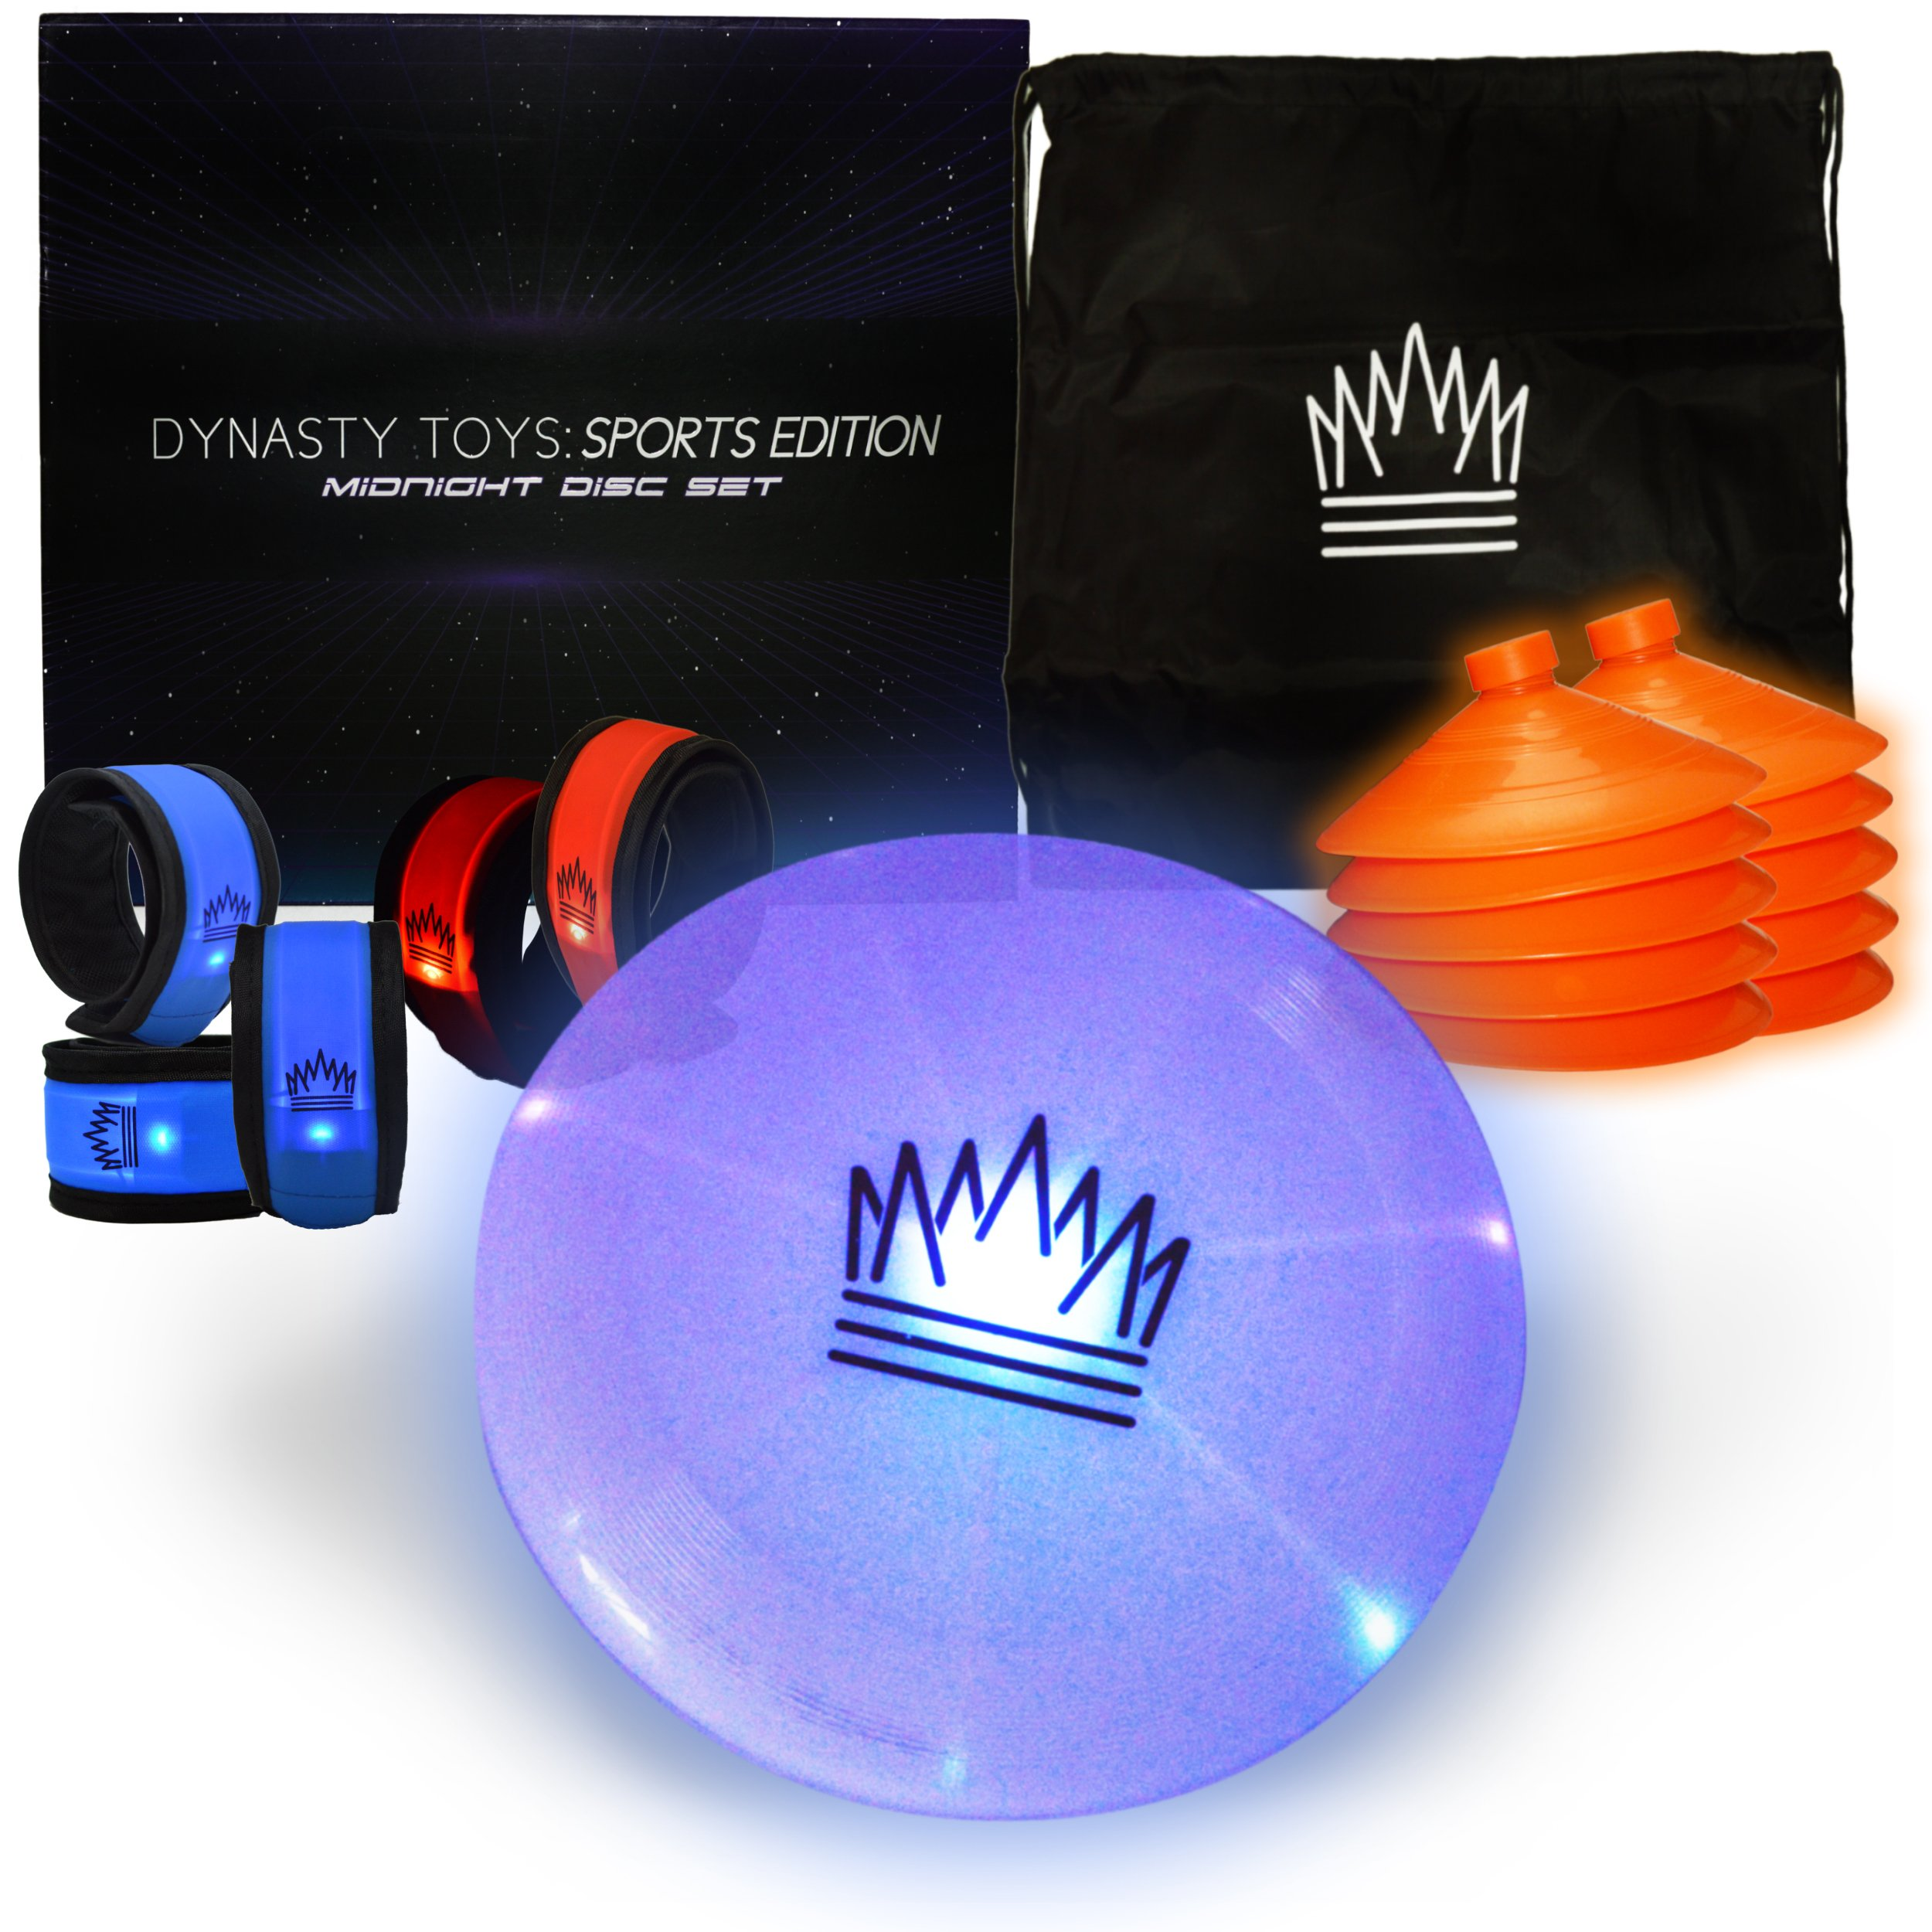 Outdoor Games At Night - LED Glow in the Dark Flying Disc Game. The Ultimate Night Time Event for Youth Groups and Glow Disc Throwing Aficionados by Outdoor Games At Night